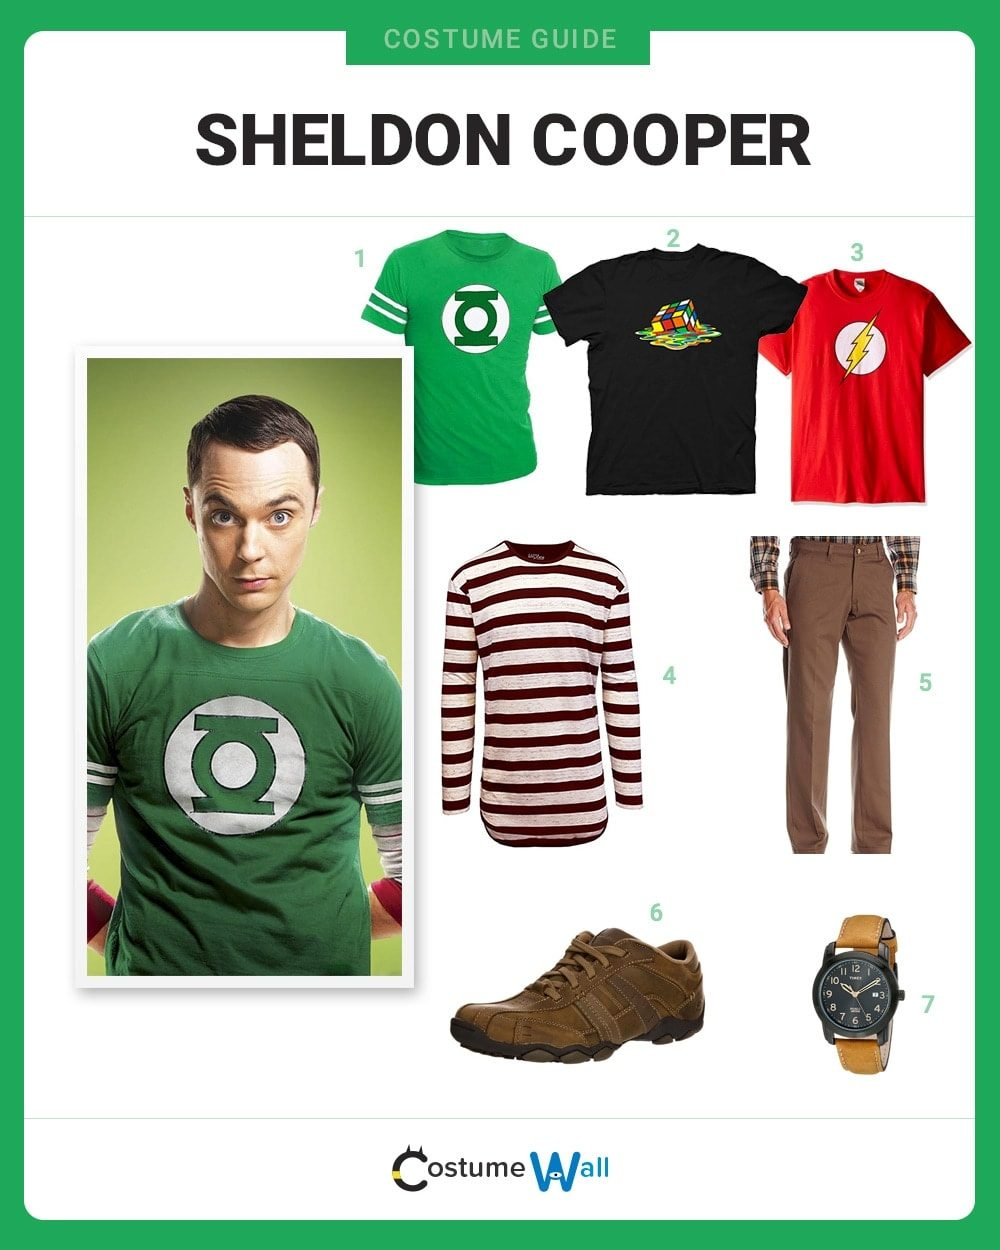 Sheldon Cooper Costume Guide